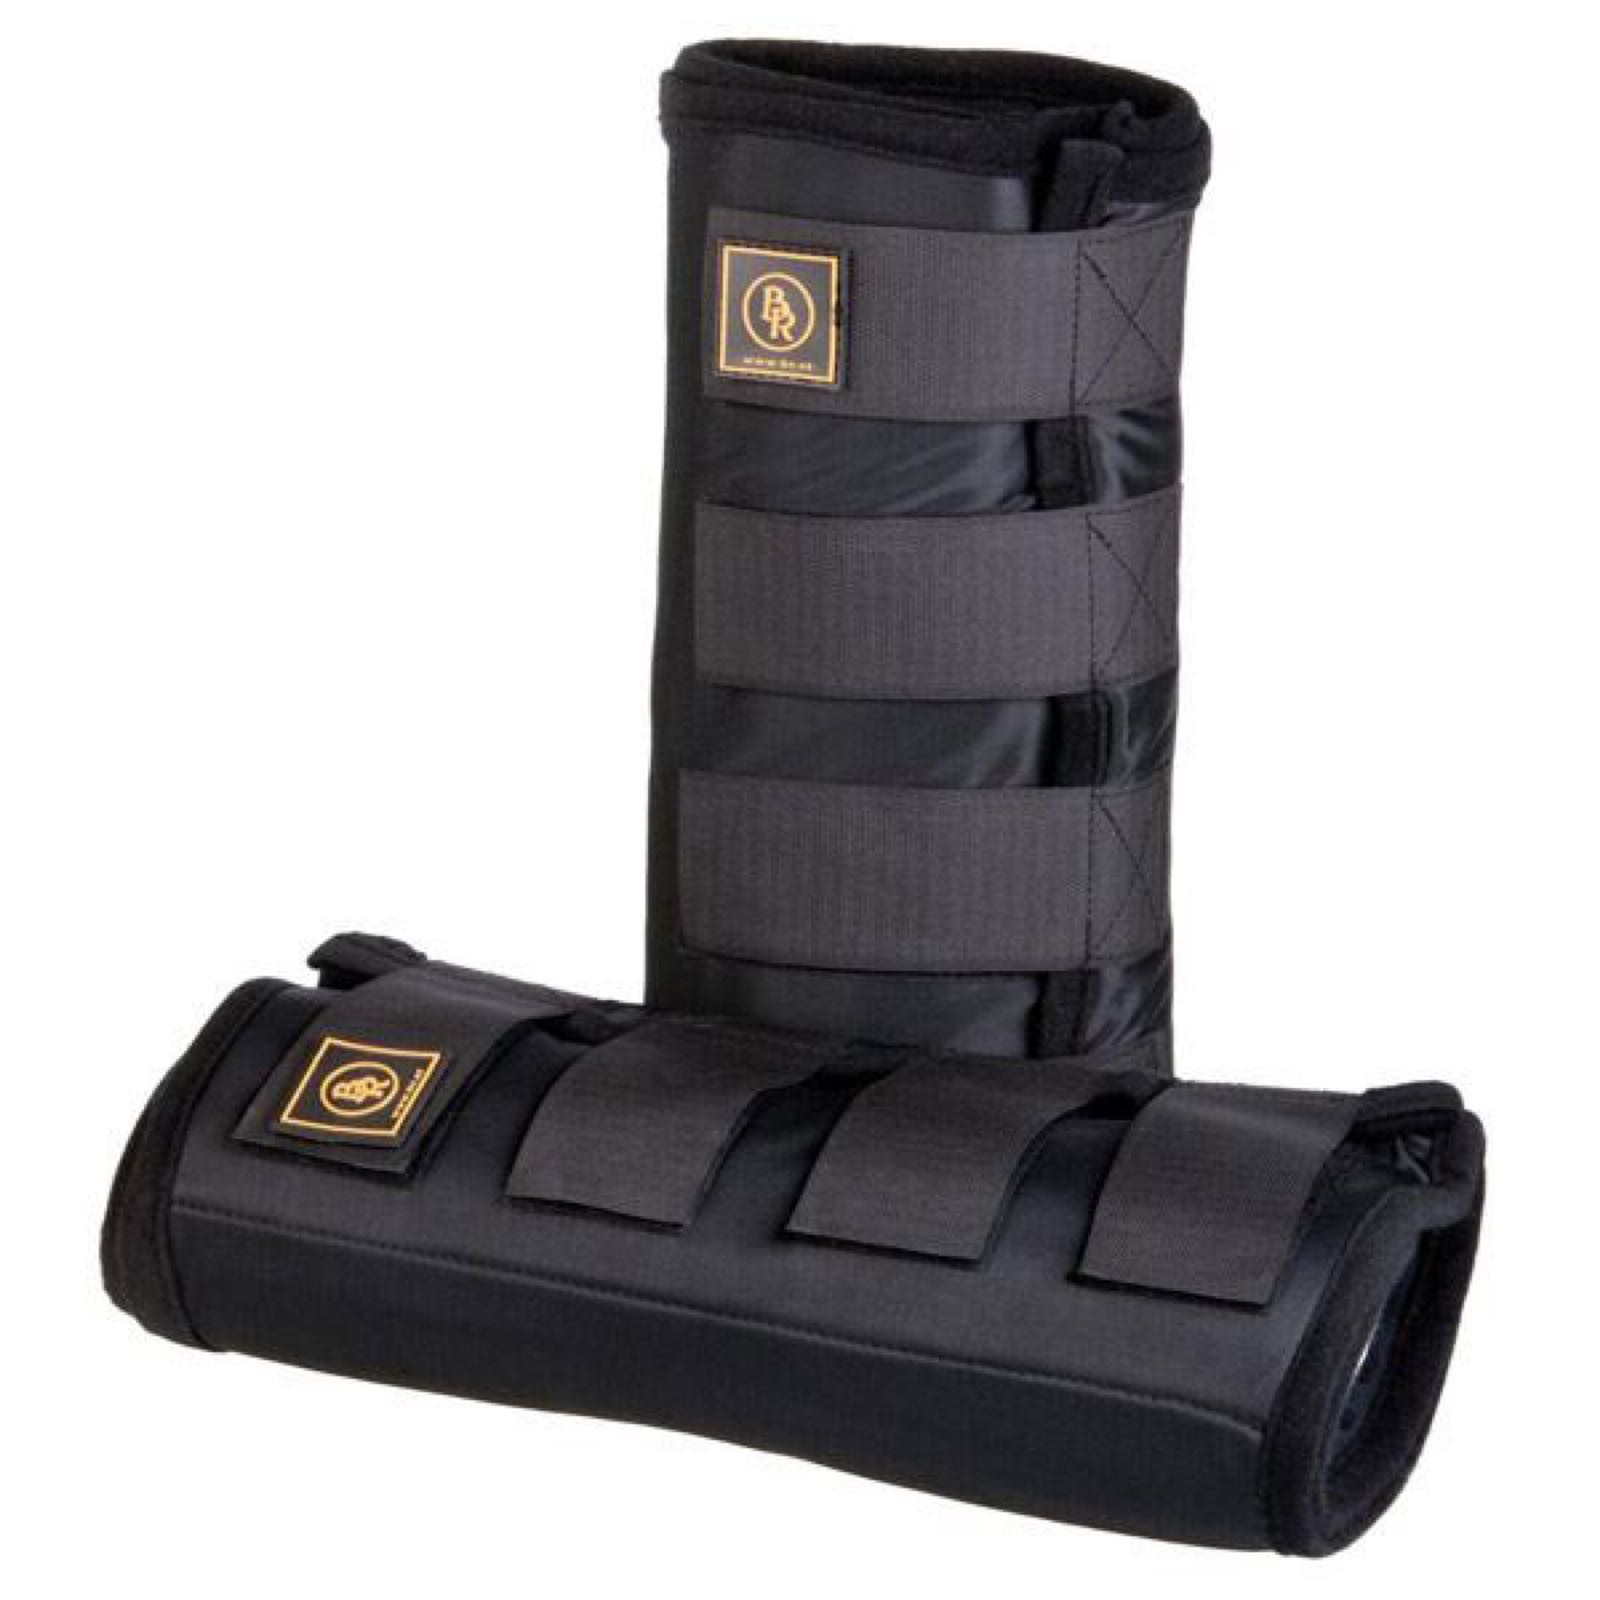 Hot and Cold therapy boots